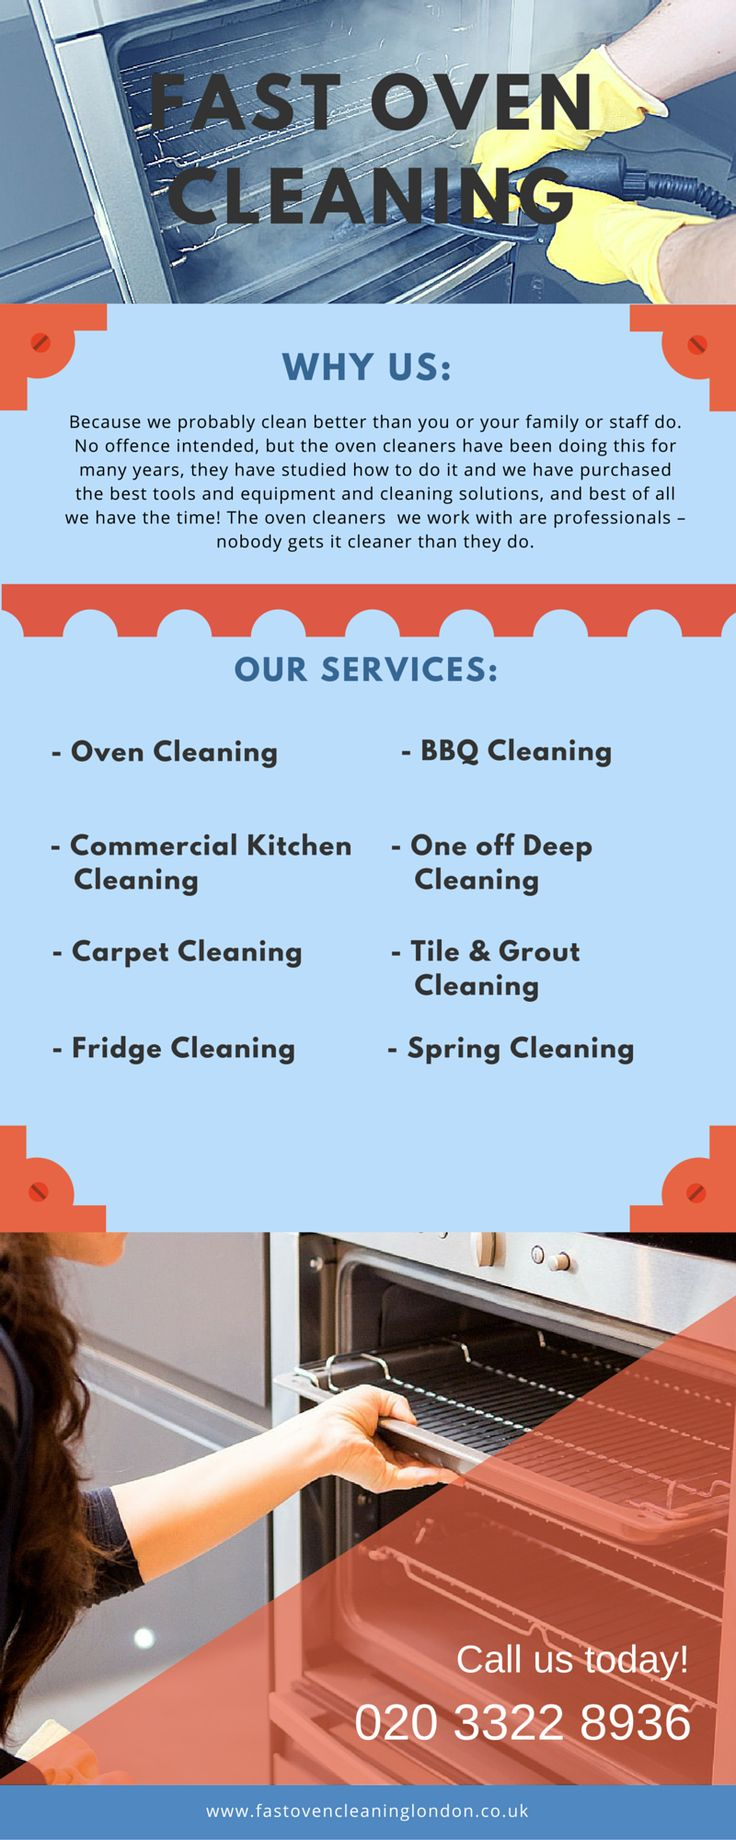 We are your professional oven cleaning expert that can help you out with many other facilities. Contact us now on 020 3322 8936 to check out our reasonable costs and superior bargains.